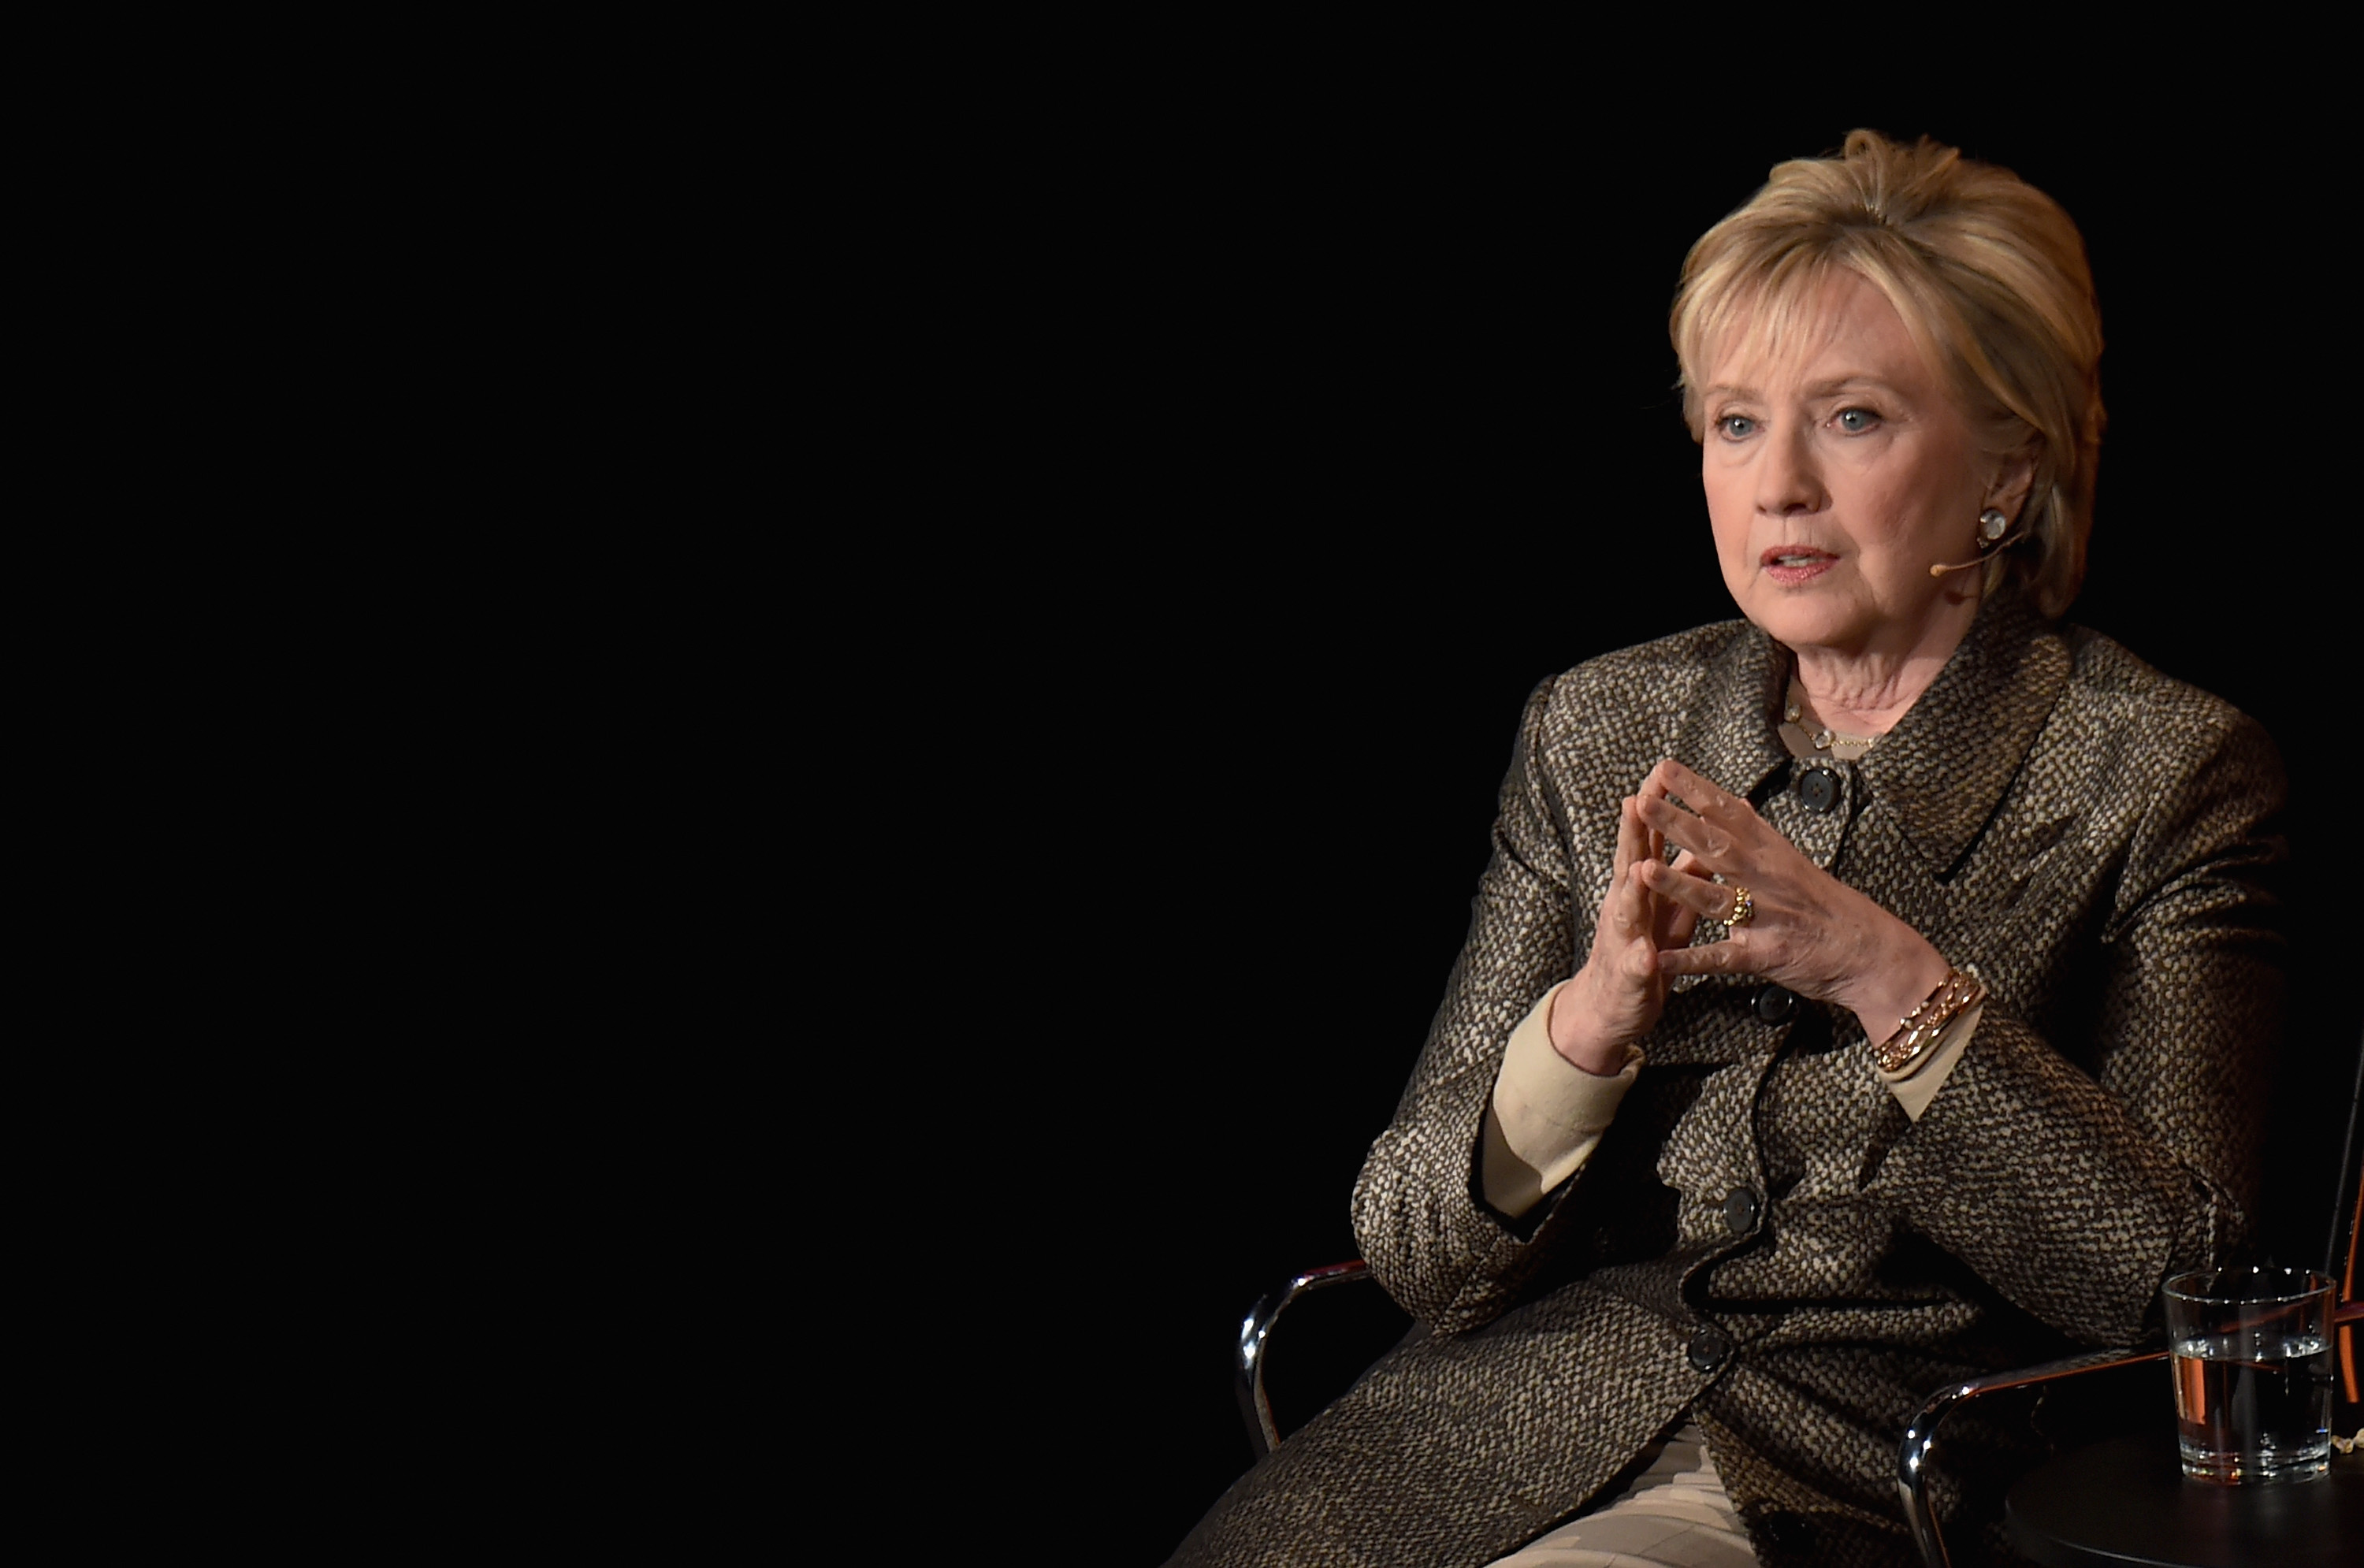 Hillary Clinton speaks during the Eighth Annual Women In The World Summit at Lincoln Center for the Performing Arts on April 6, 2017 in New York City.